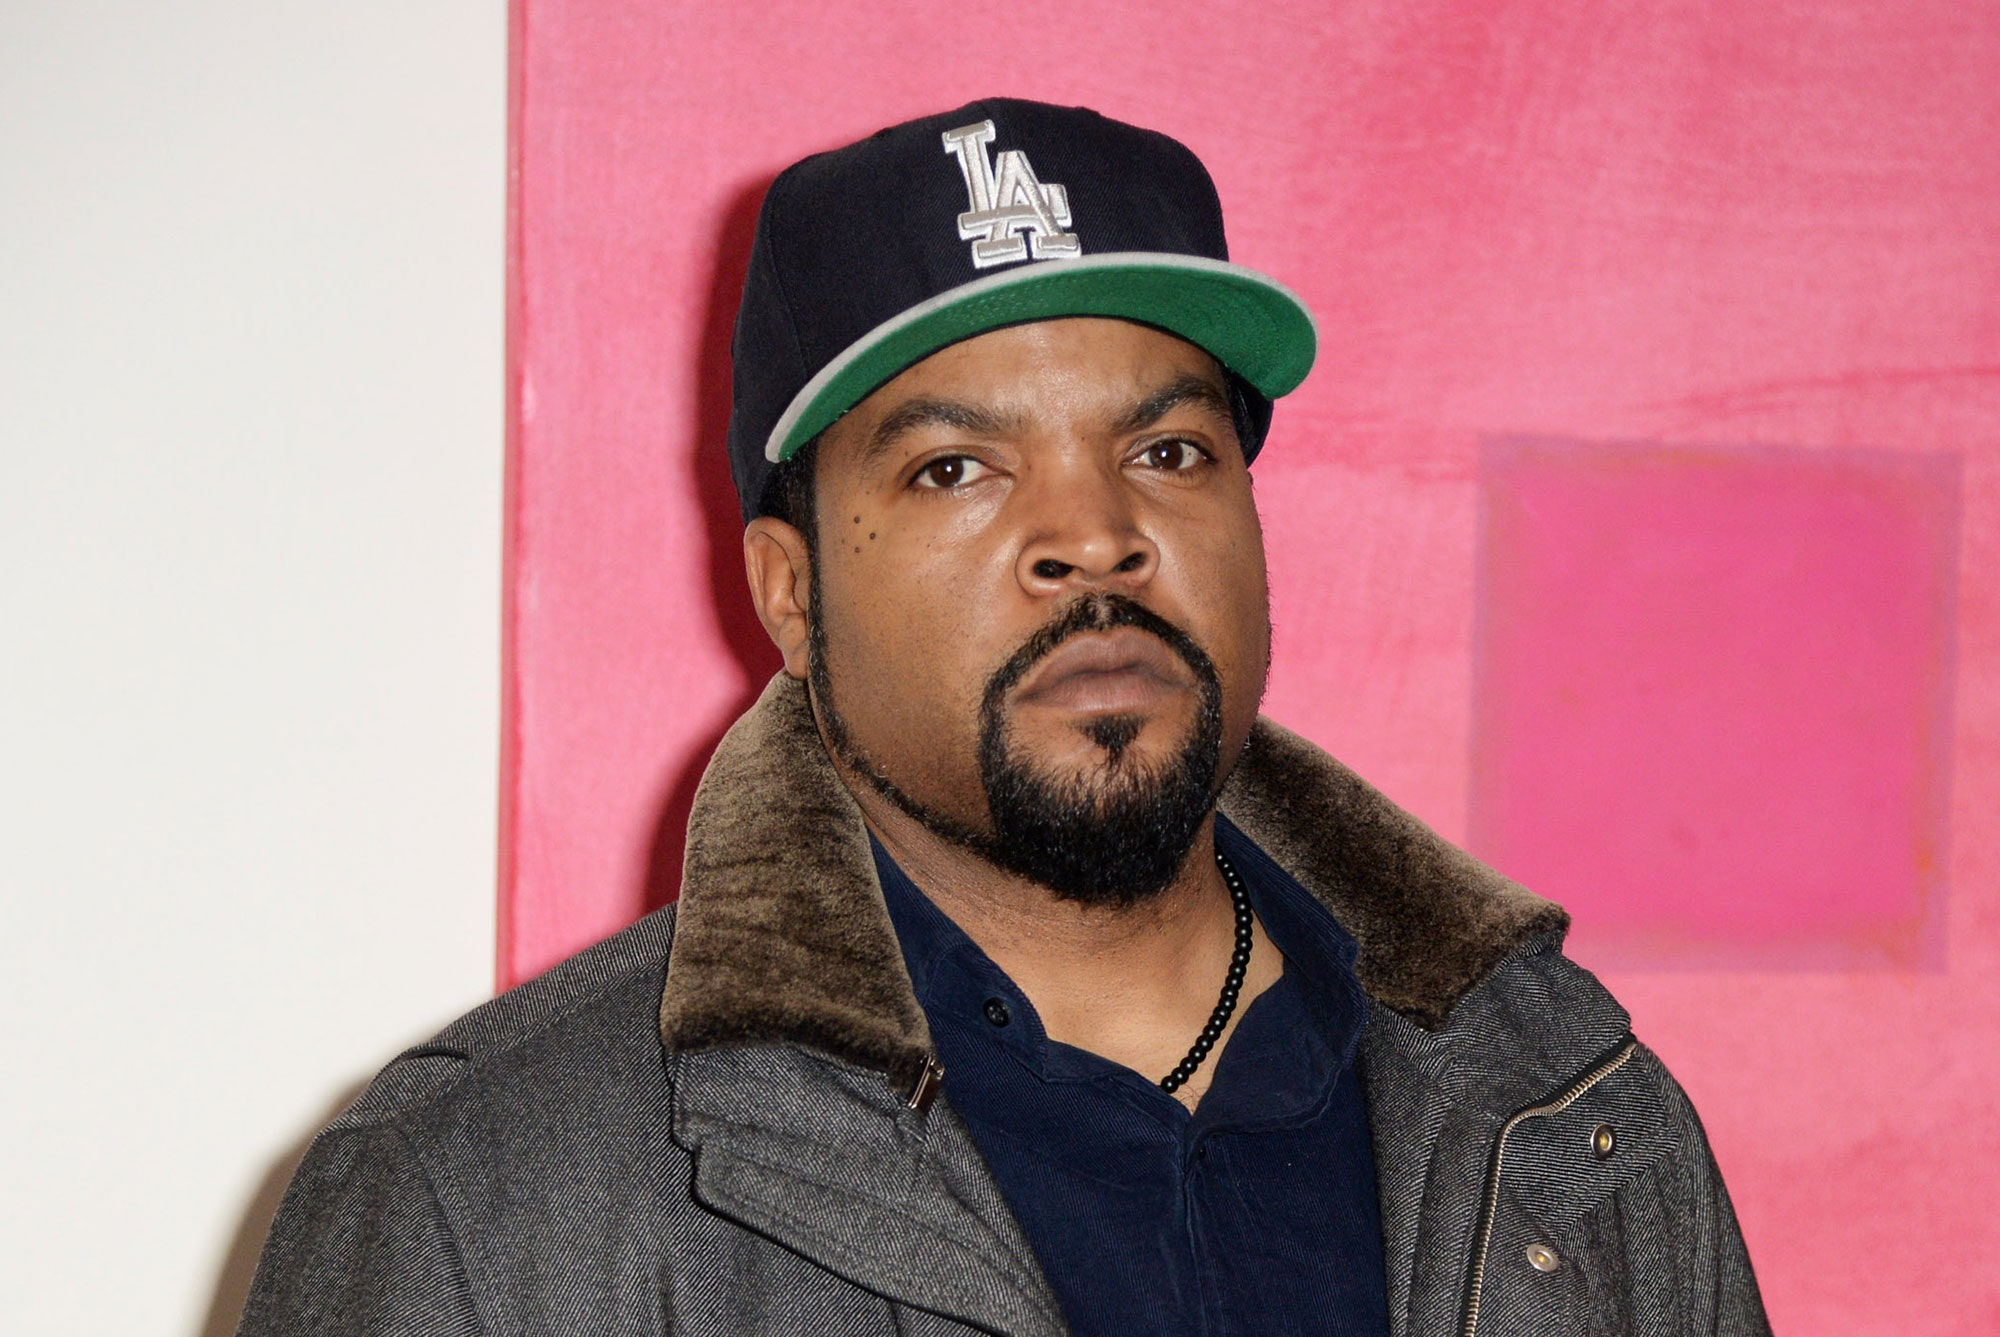 ice-cube-responds-to-critics-that-thinks-hes-being-used-by-trump